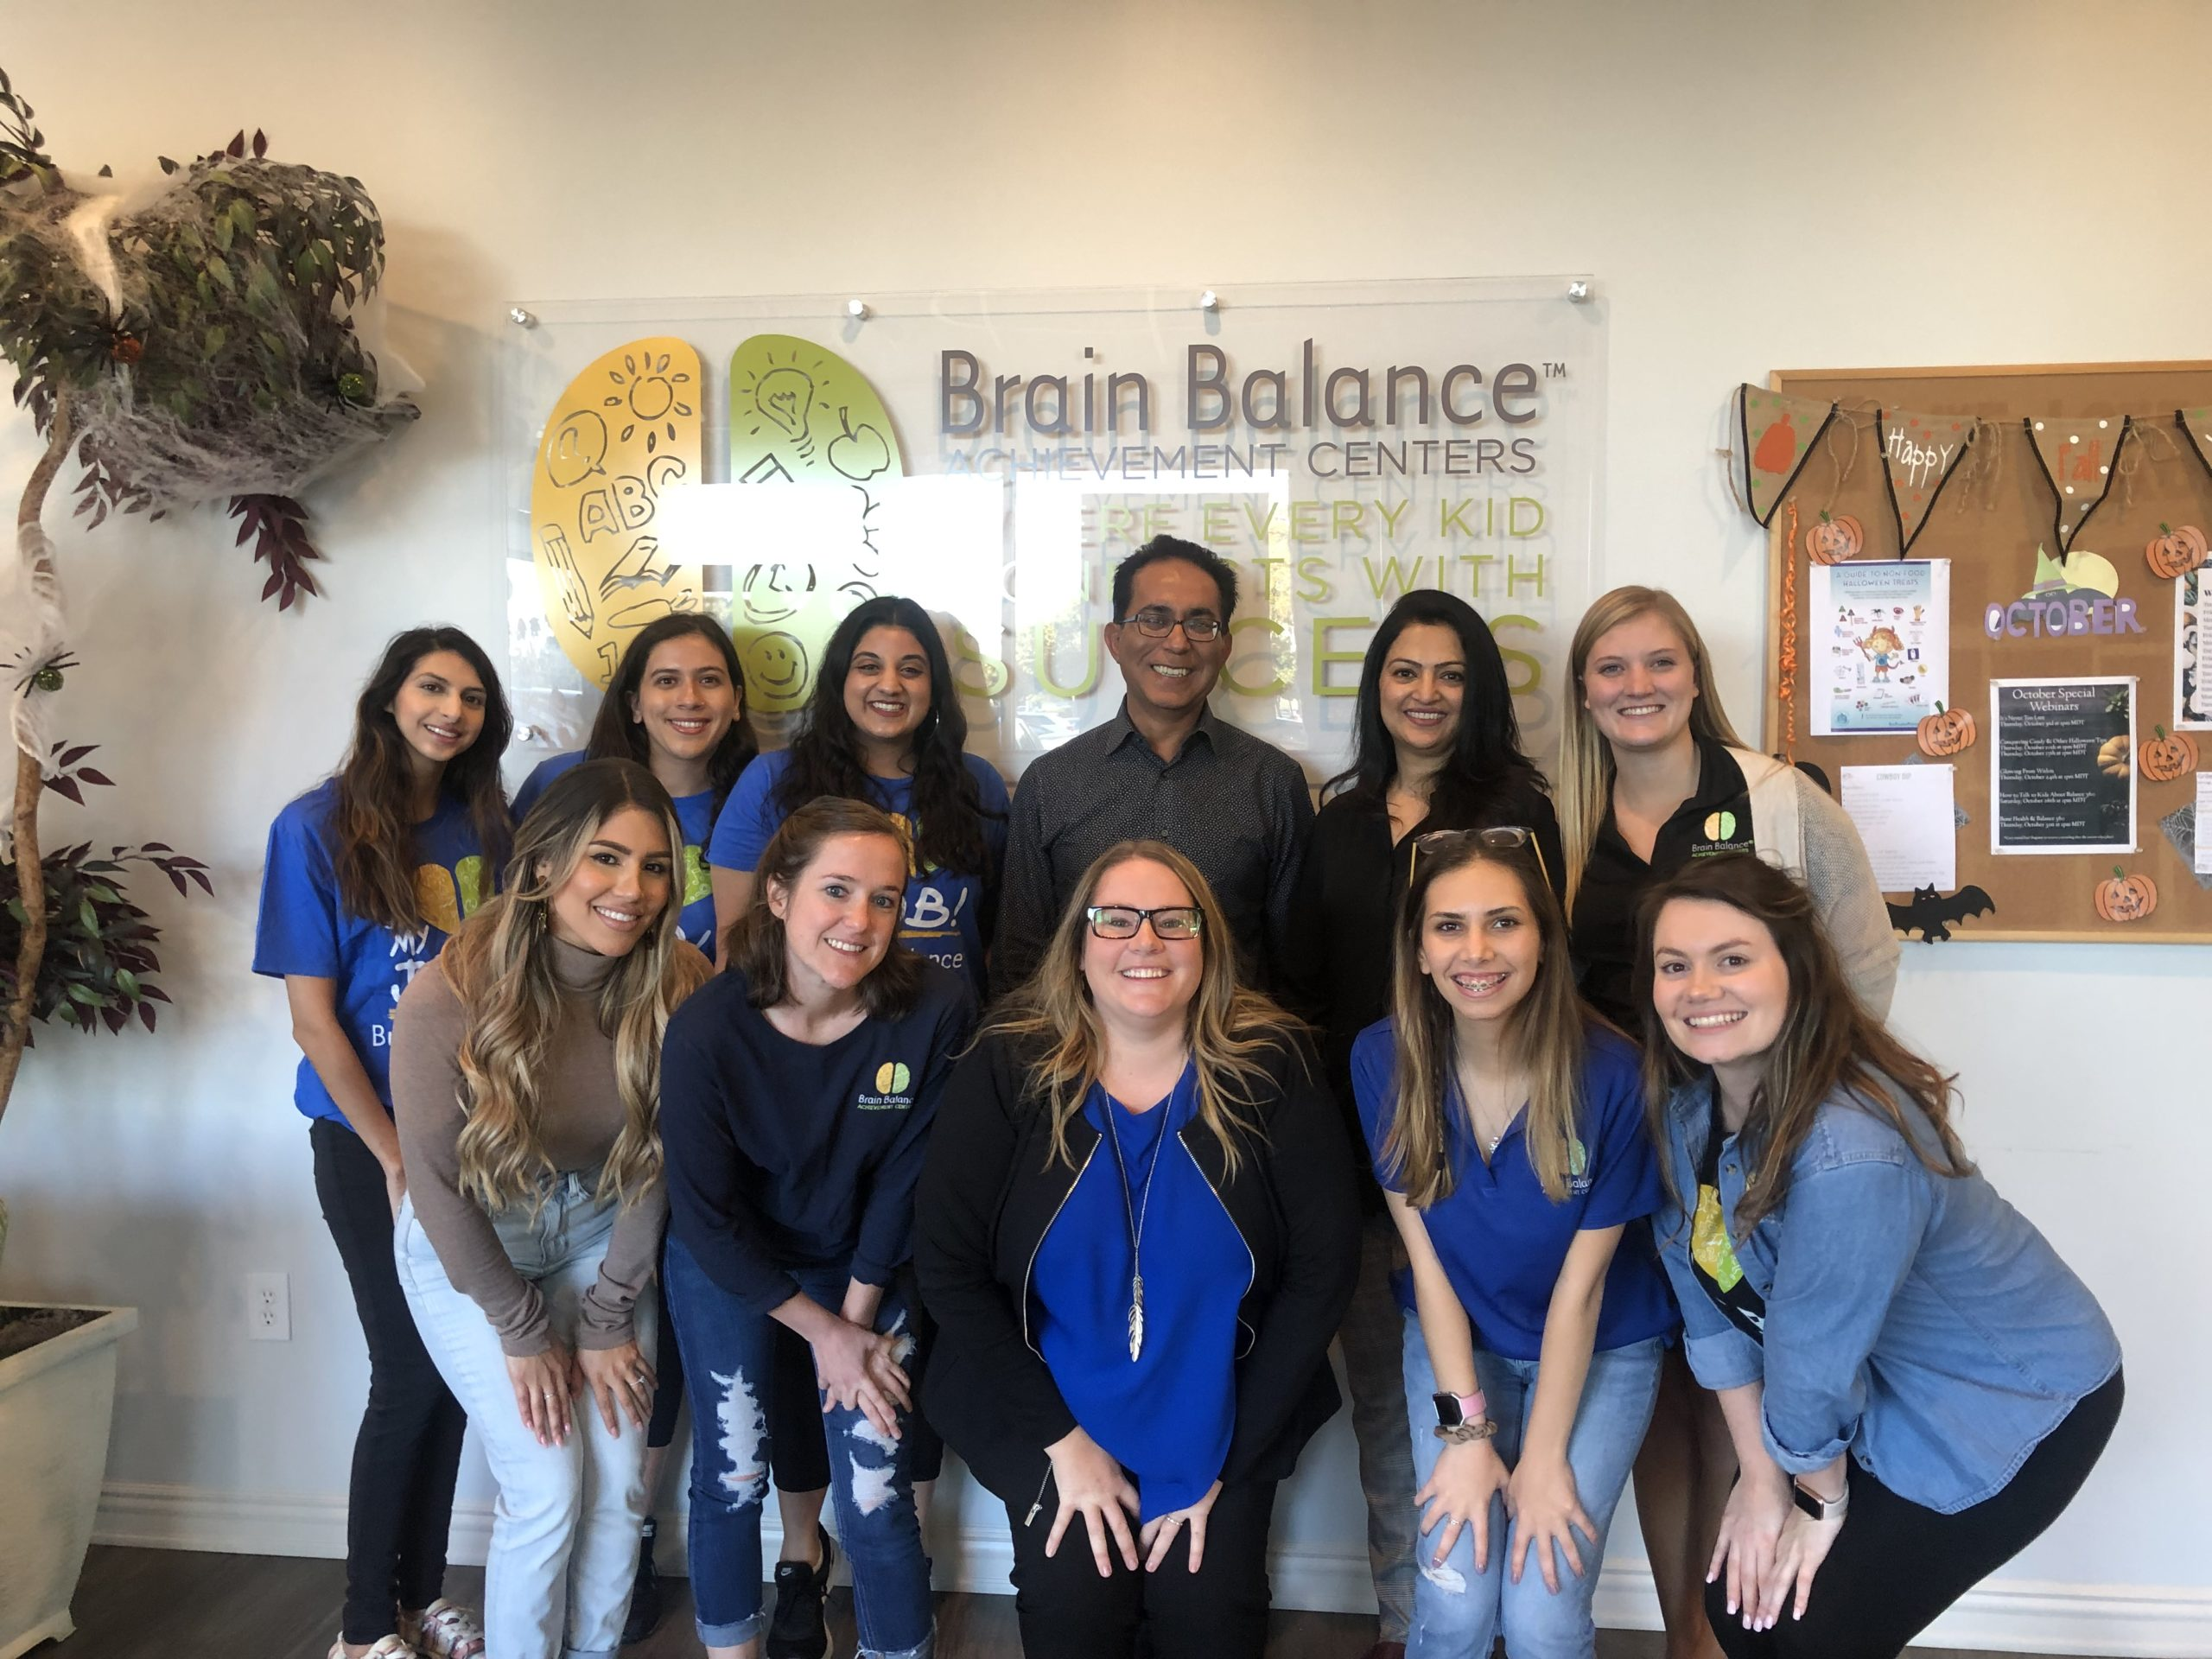 Our Brain Balance Family